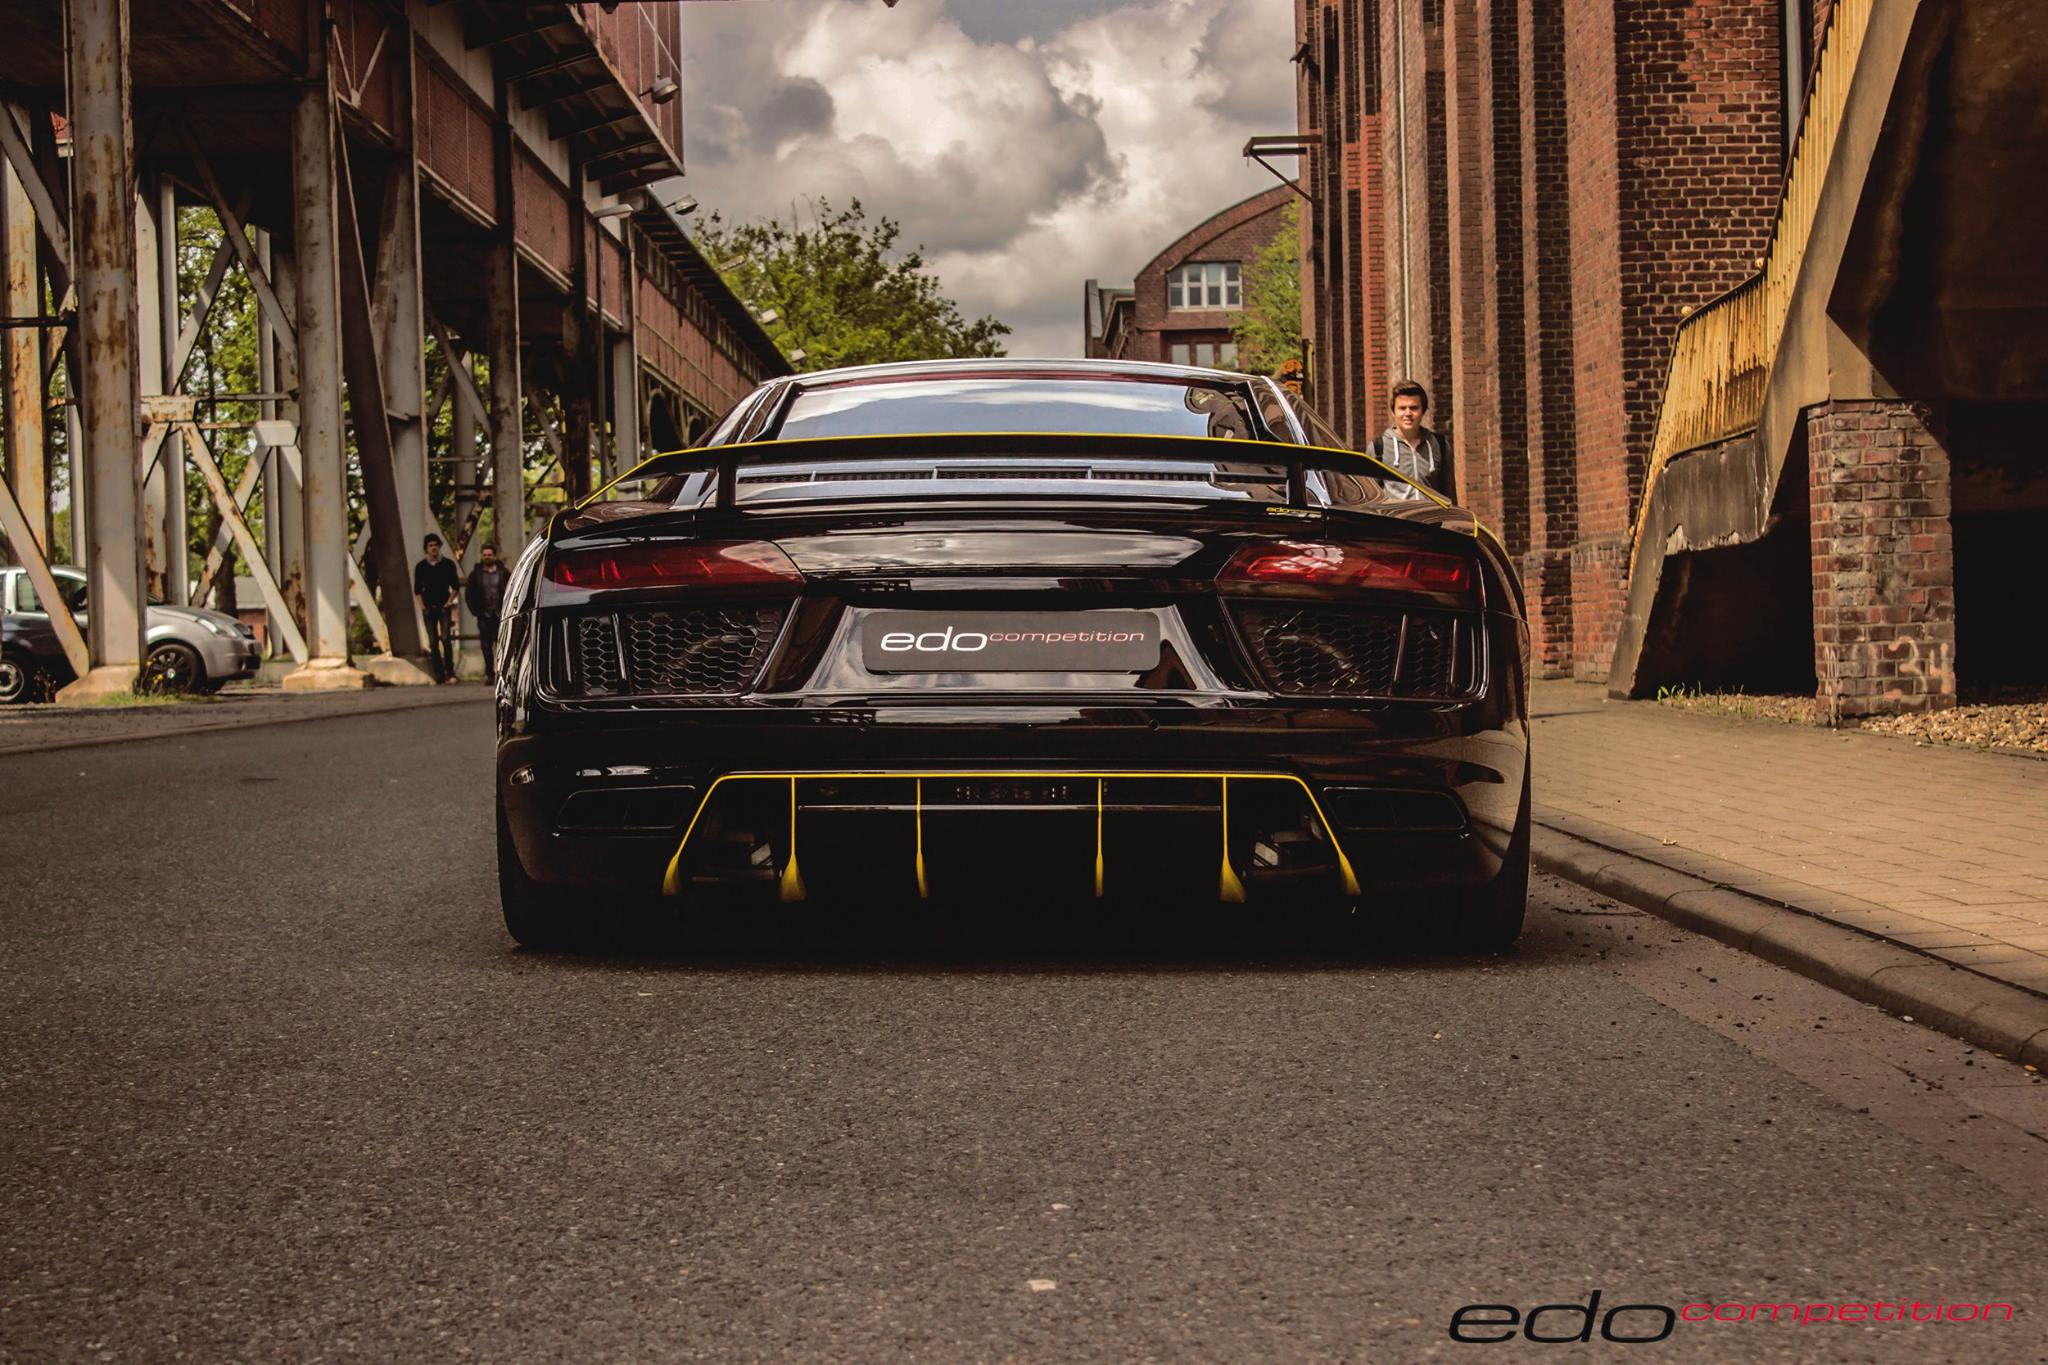 Audi R8 V10 Tuned By Edo Looks Like The Lamborghini Centenario